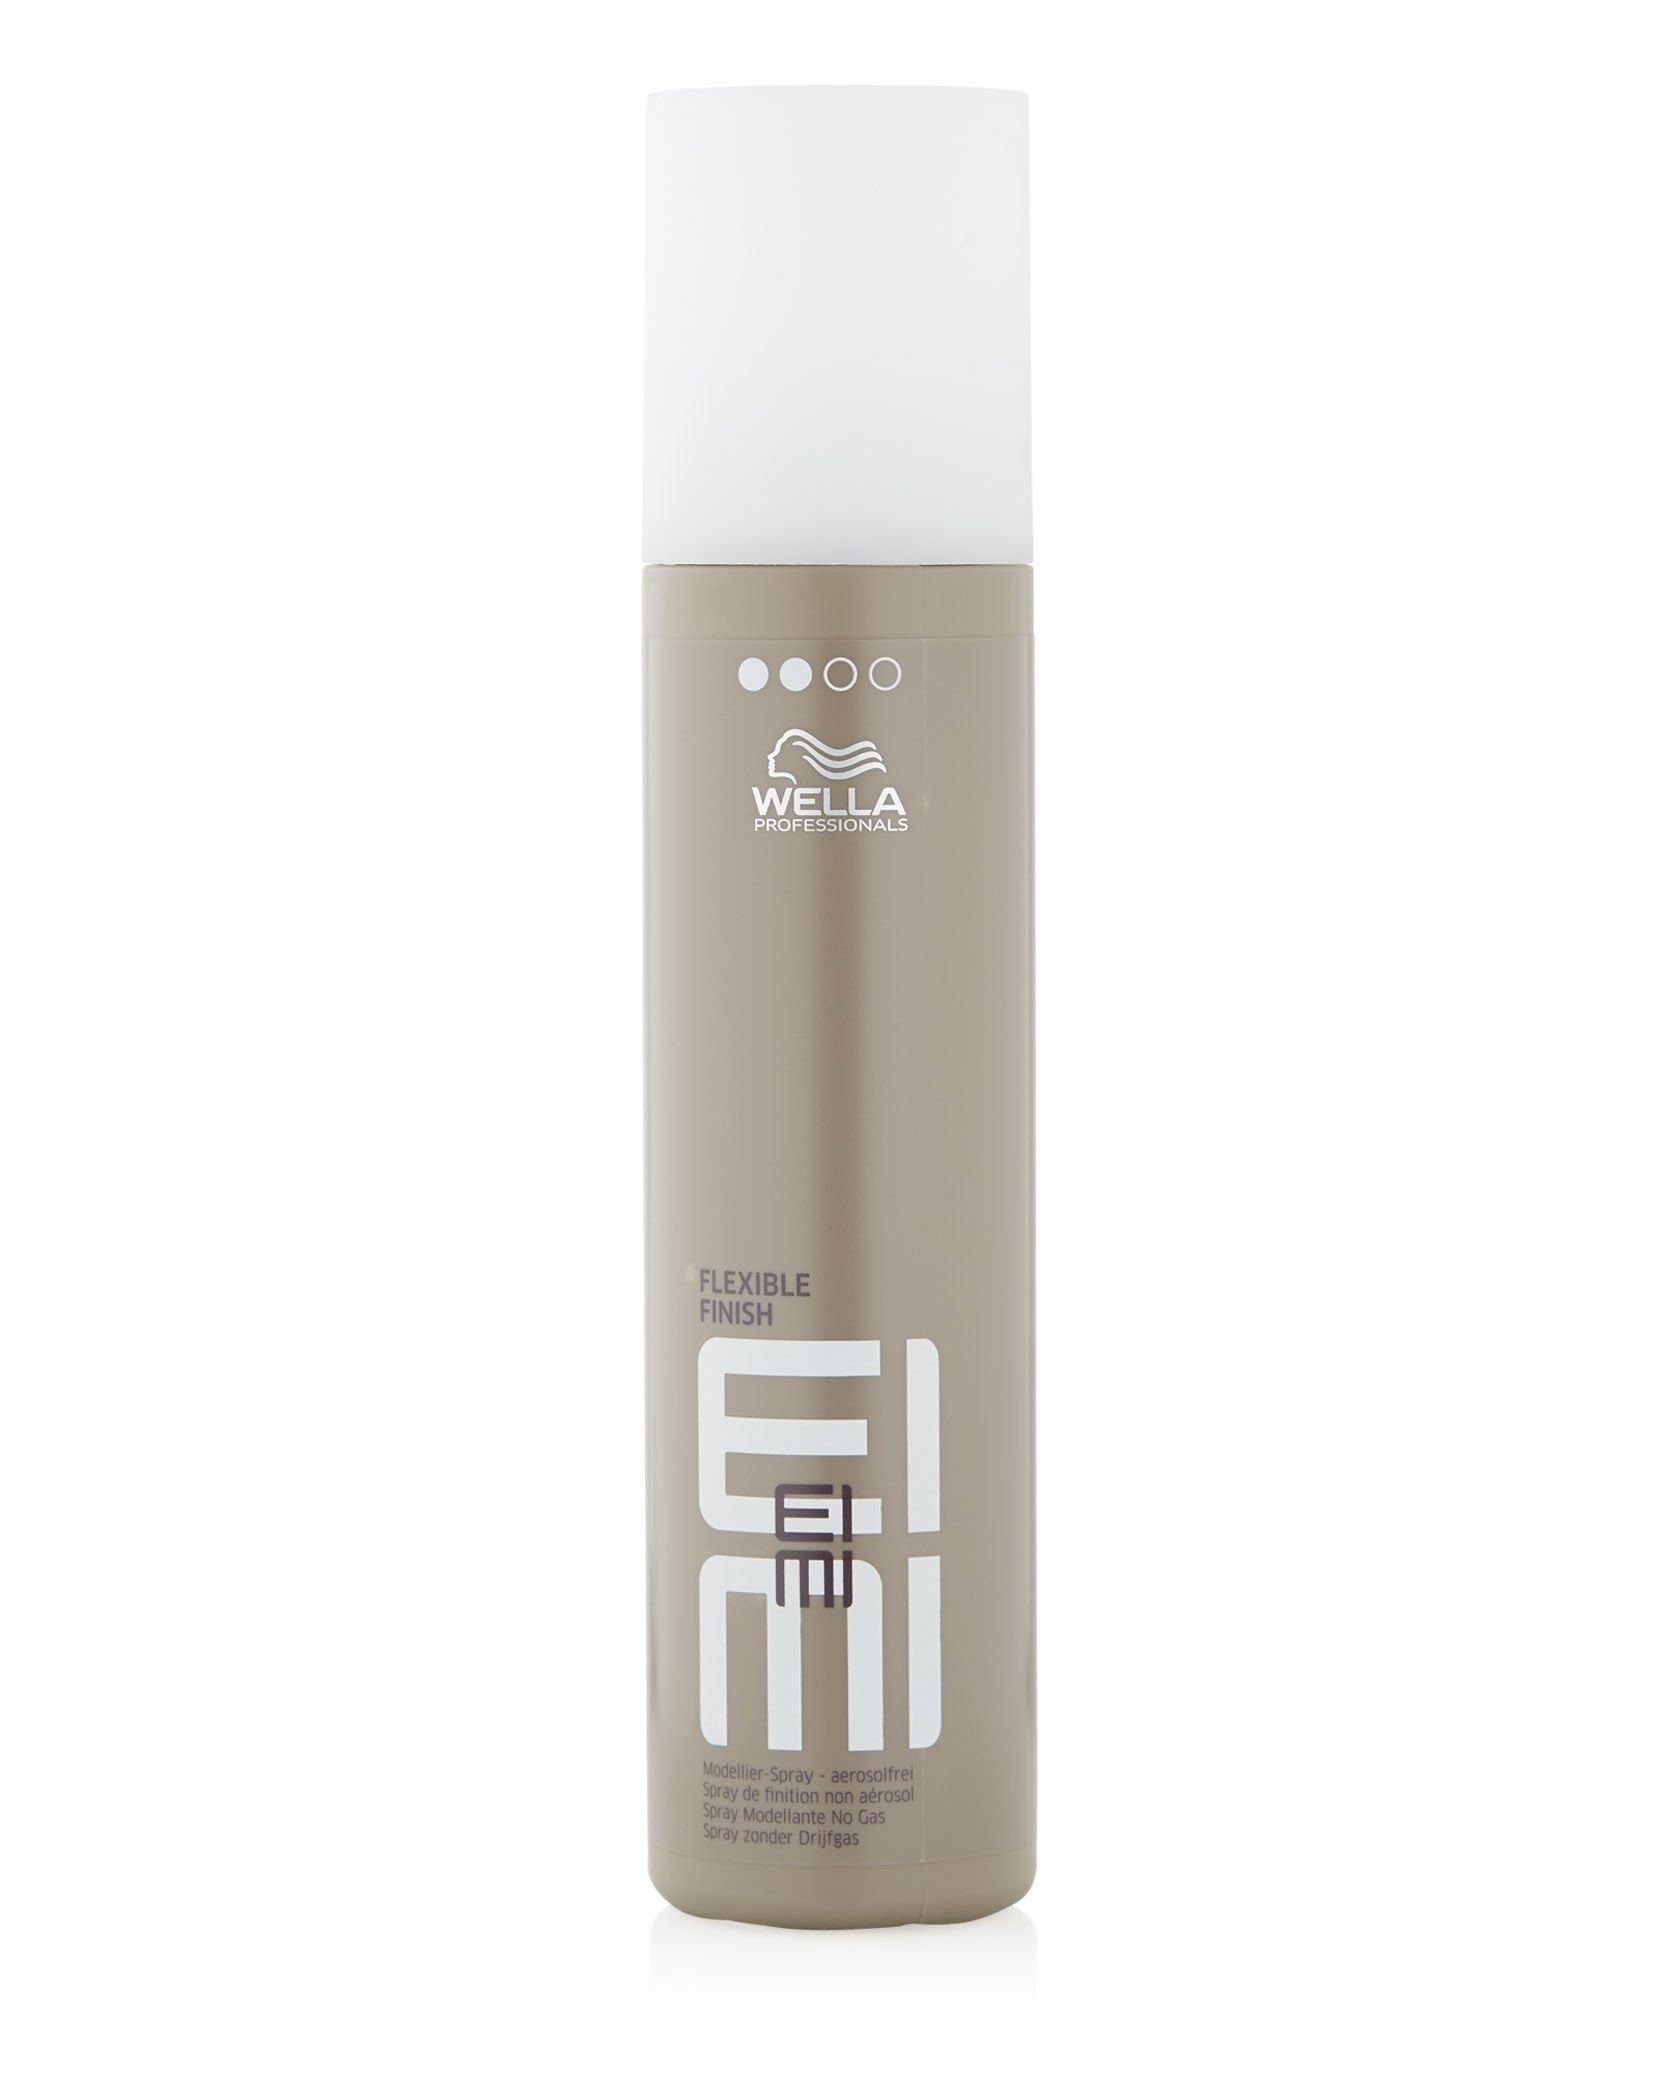 Wella Professionals Haarspray »Eimi Flexible Finish Modellier Spray- Aerosolfrei«